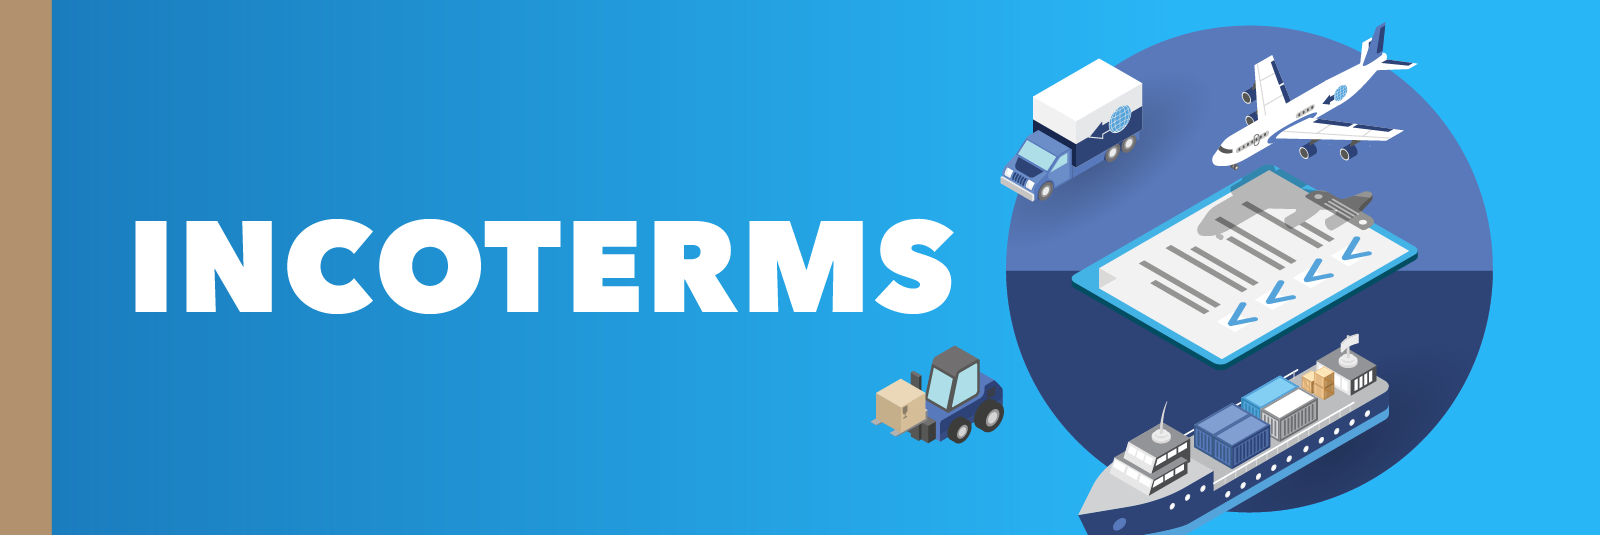 FSI_Post_Incoterms_Website